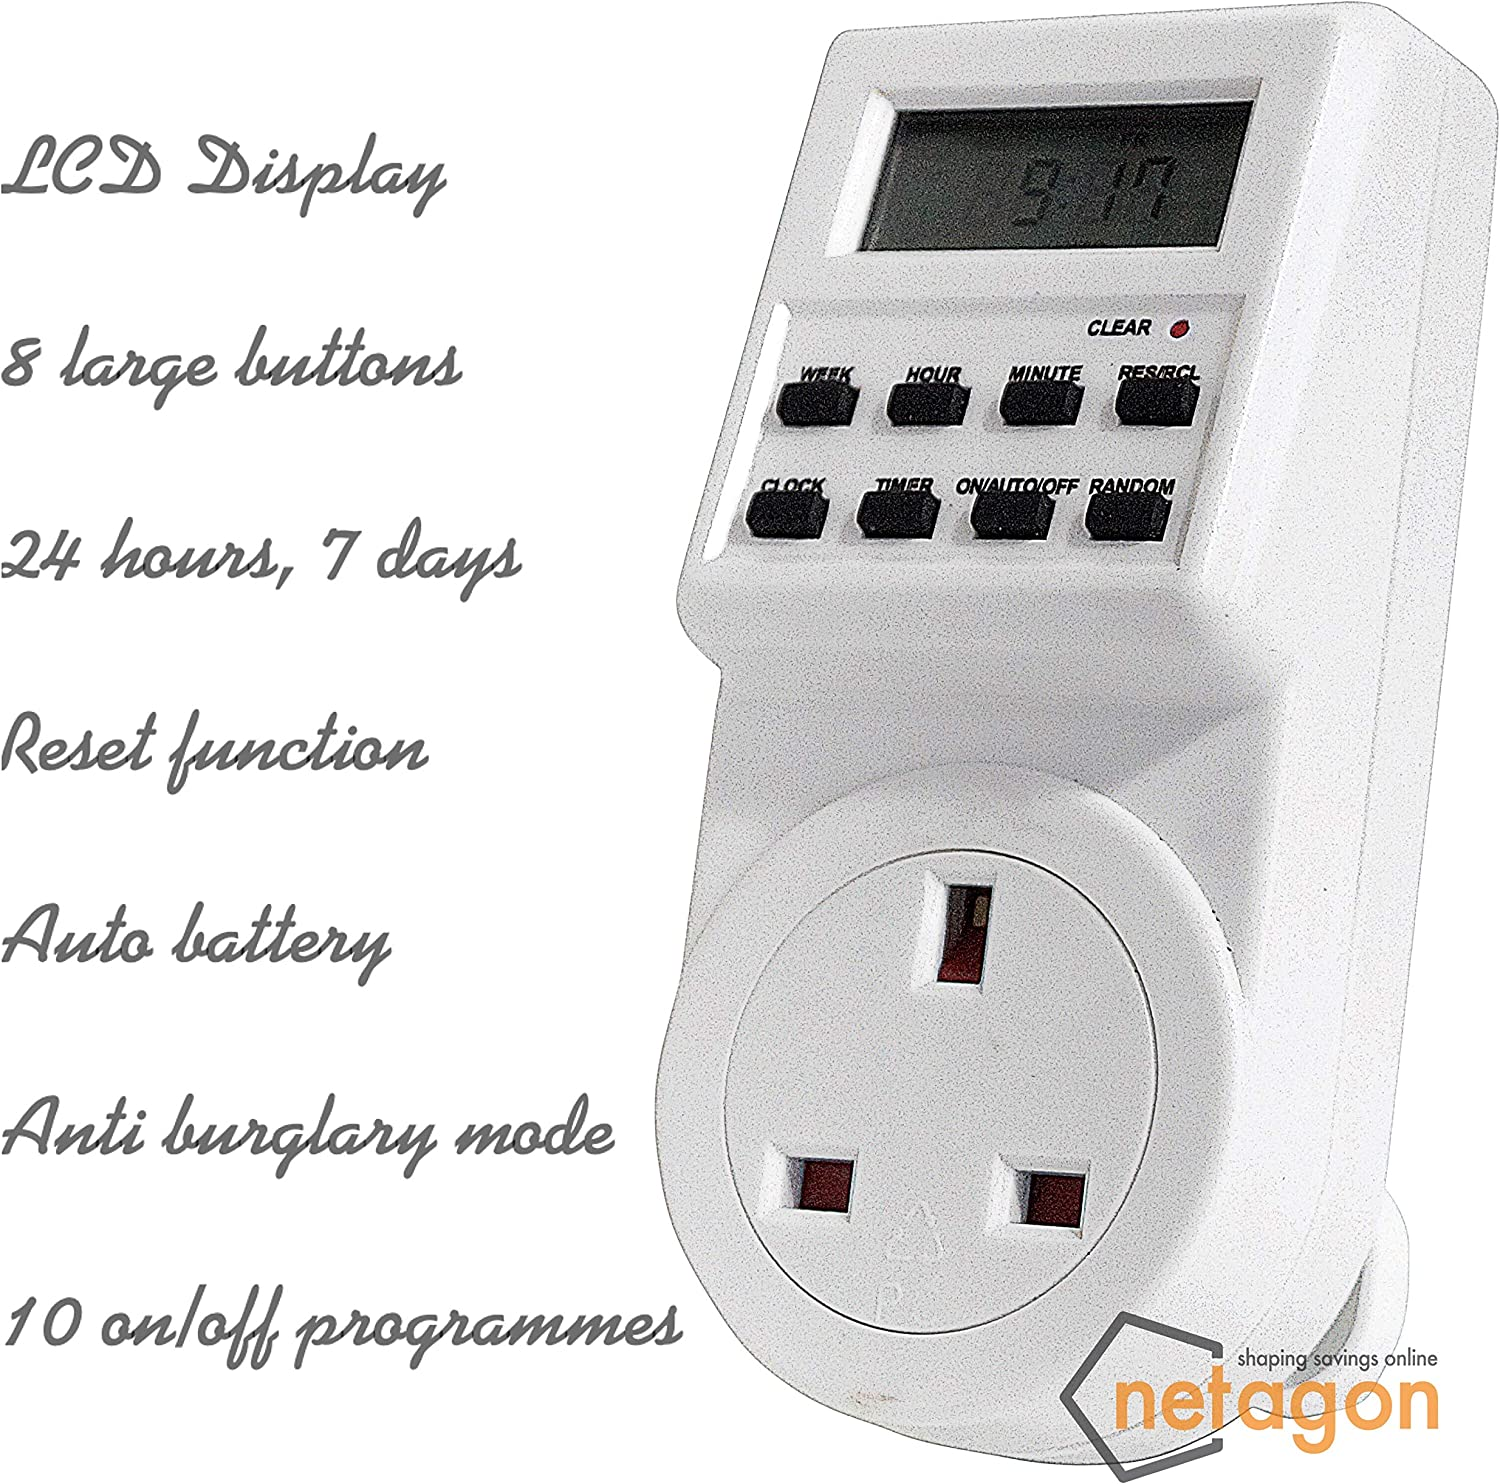 Pack of 1 Netagon Electric Appliance Plug-in Programmable Digital Timer Socket Plug 24 Hours, 7 Day, LCD Display